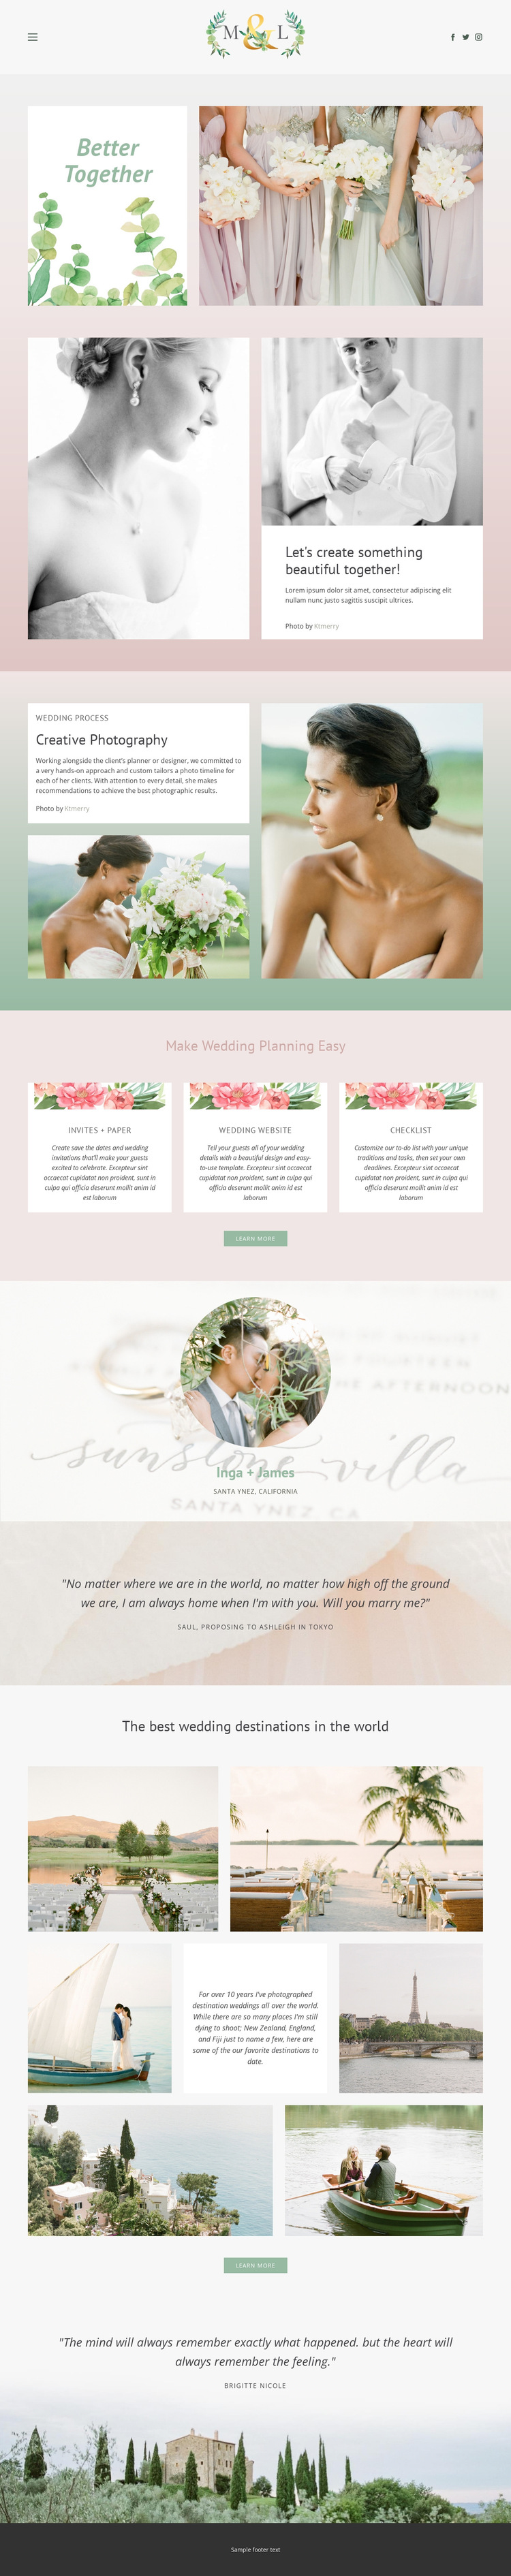 Best photos for wedding HTML5 Template